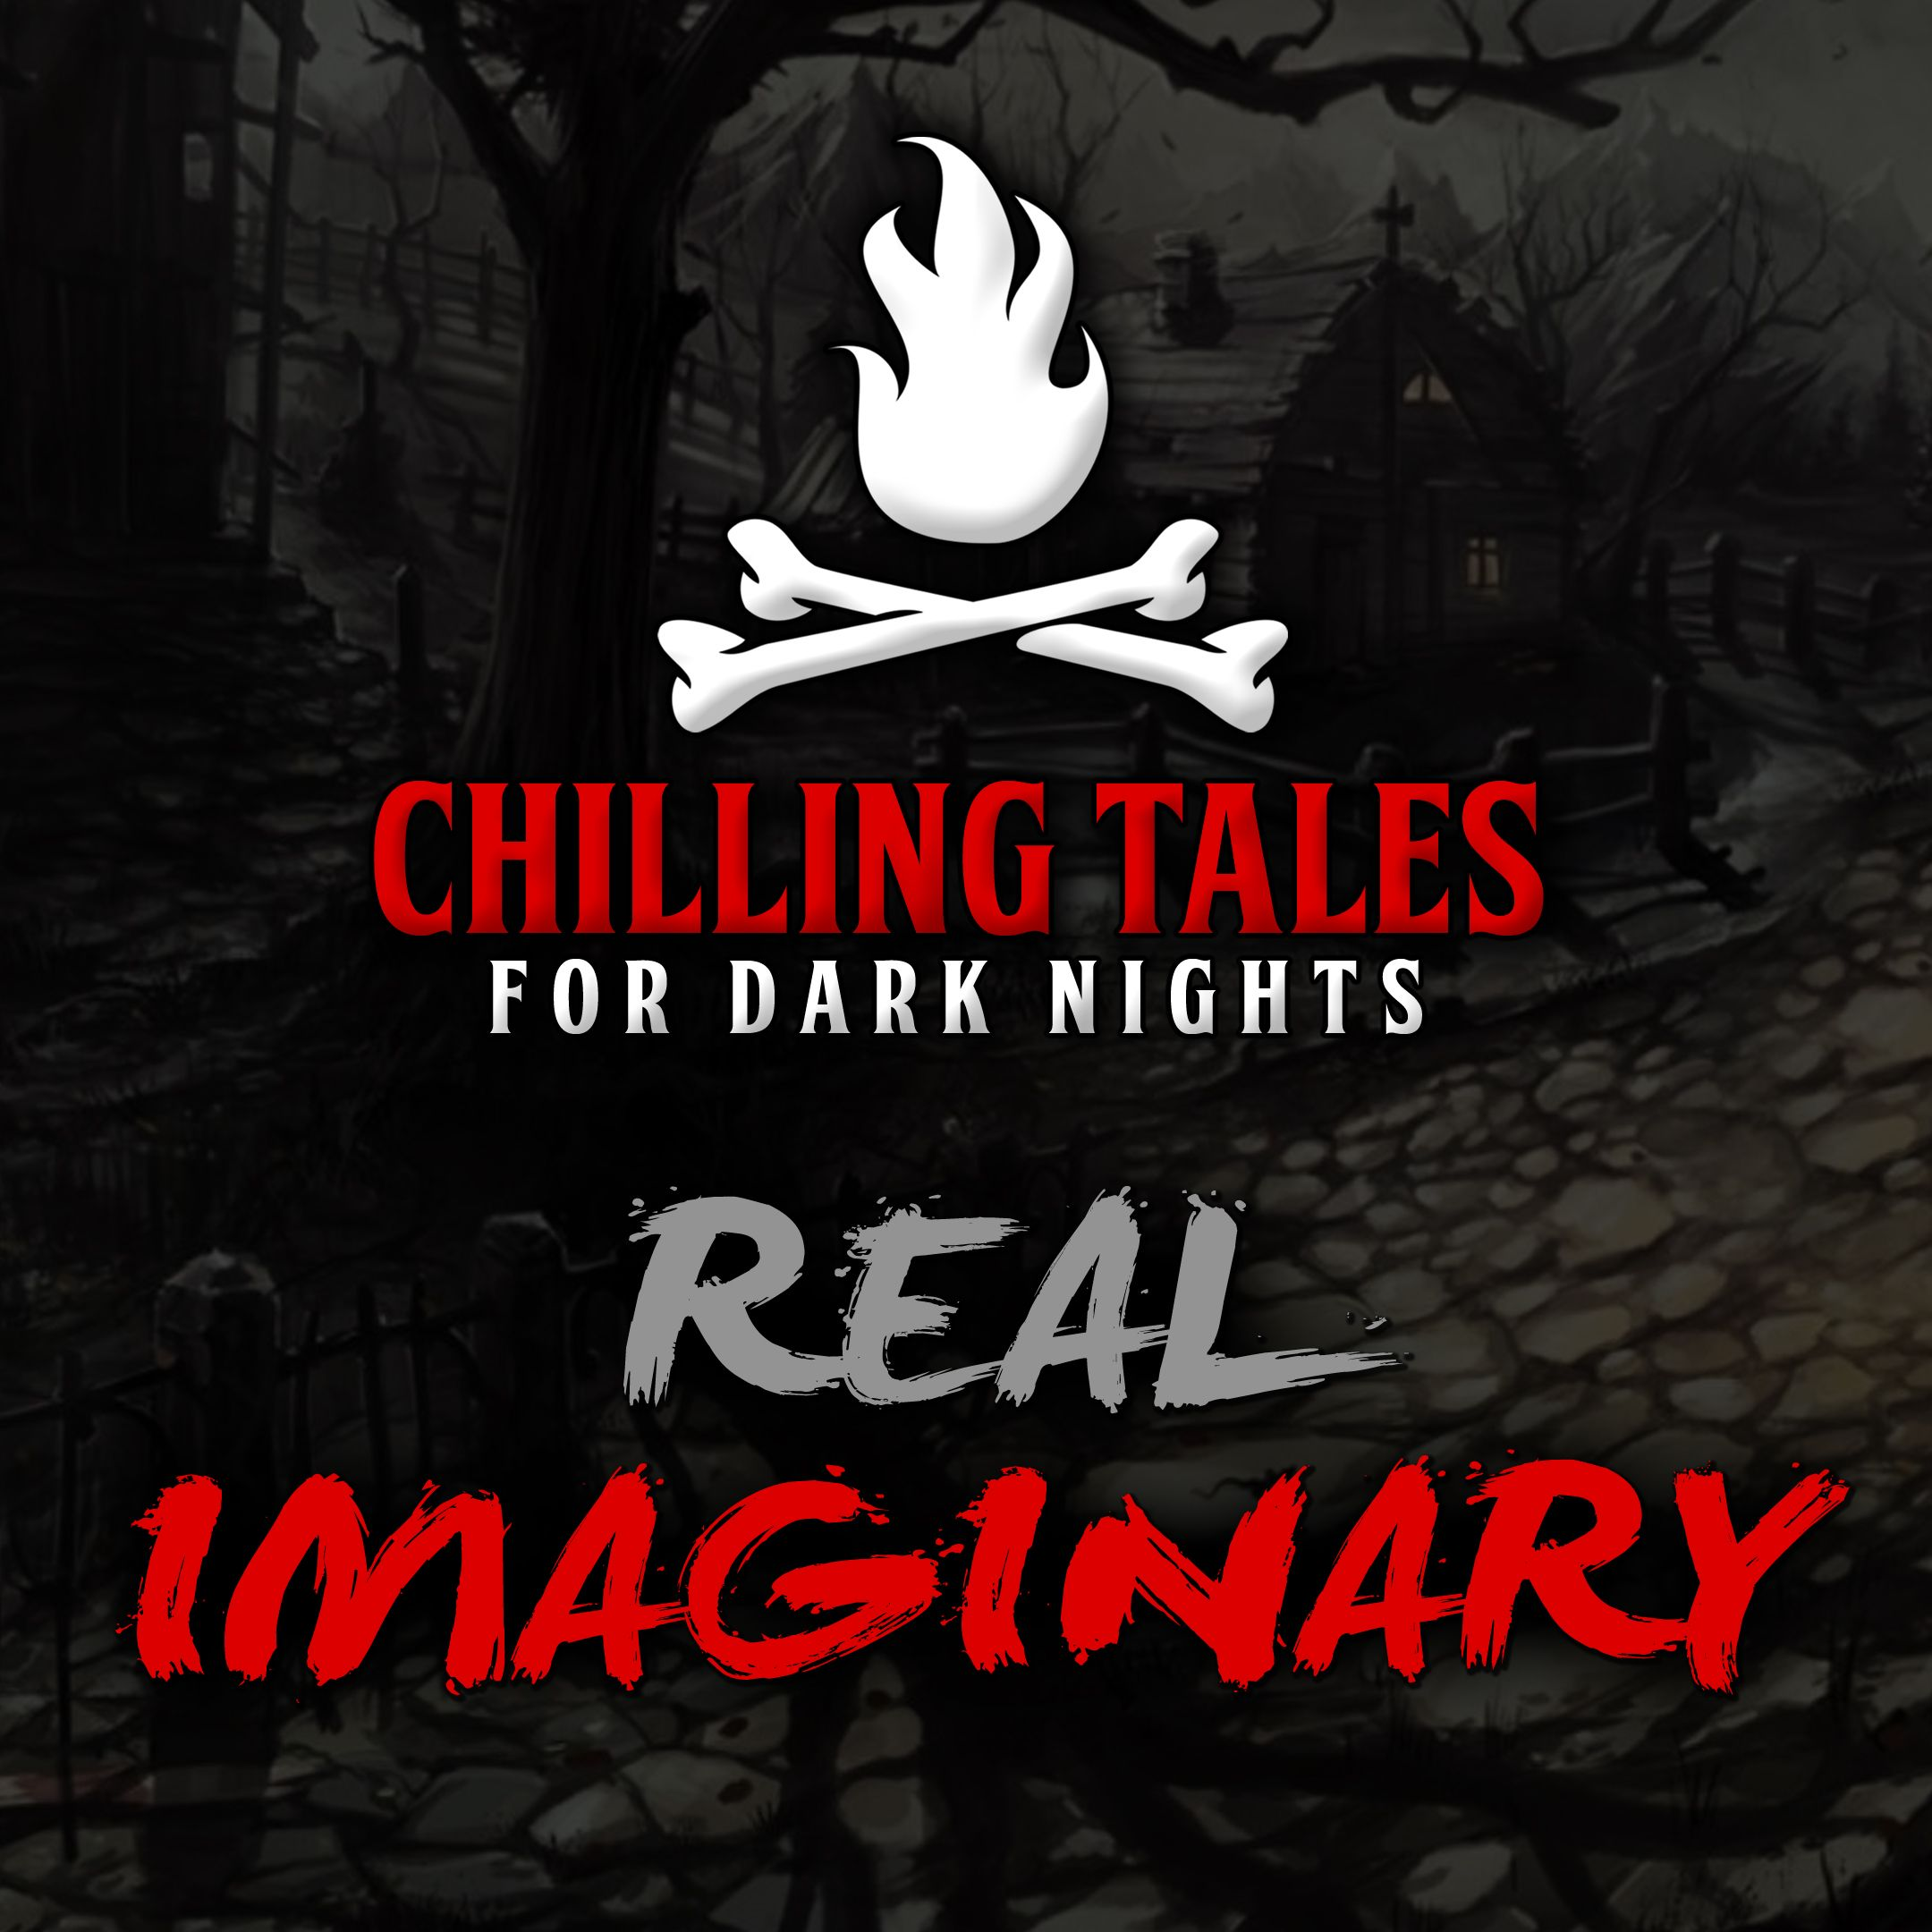 67: Real Imaginary – Chilling Tales for Dark Nights